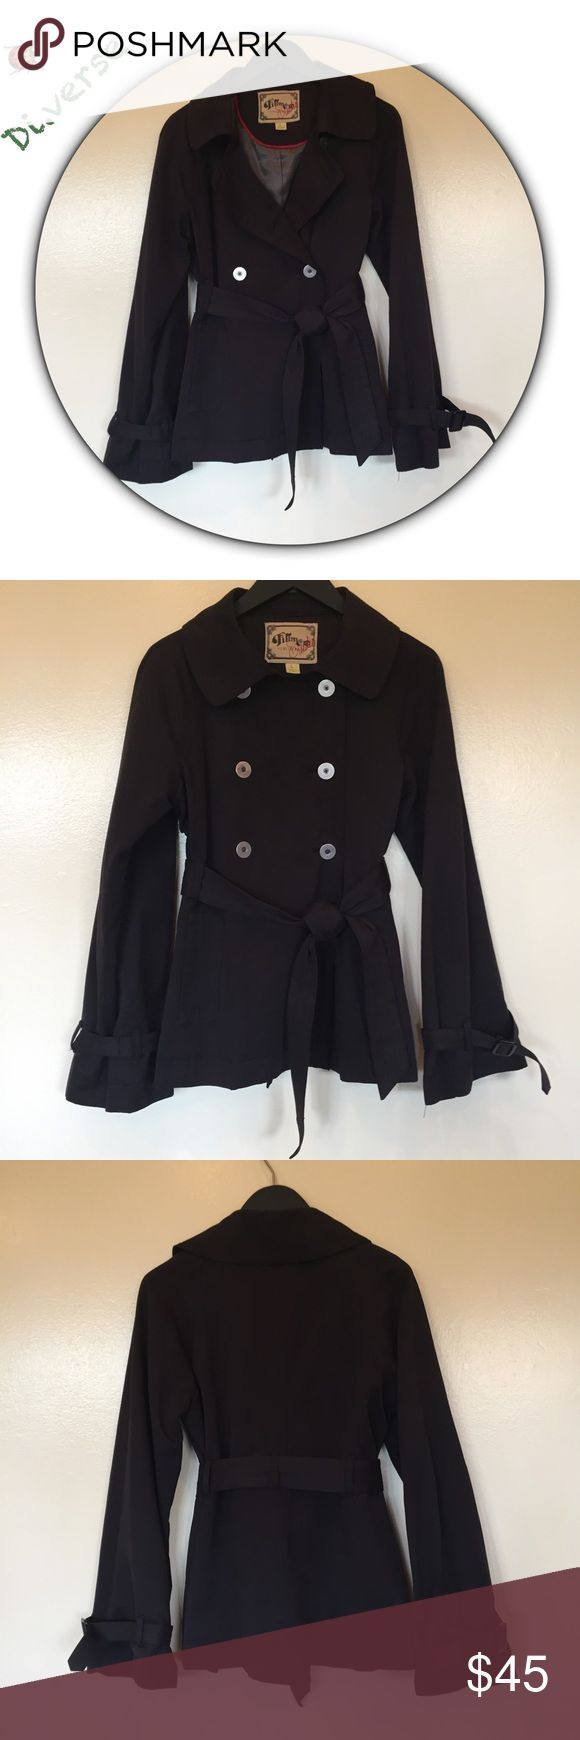 """Fillmore Studio short black trench coat size L Too cool😎😎 in great condition! 6 Silver toned buttons very comfy cotton & poly machine washable. Pockets never opened ... 27.5"""" sleeves and 26"""" in length. Fillmore Studio Jackets & Coats Trench Coats"""